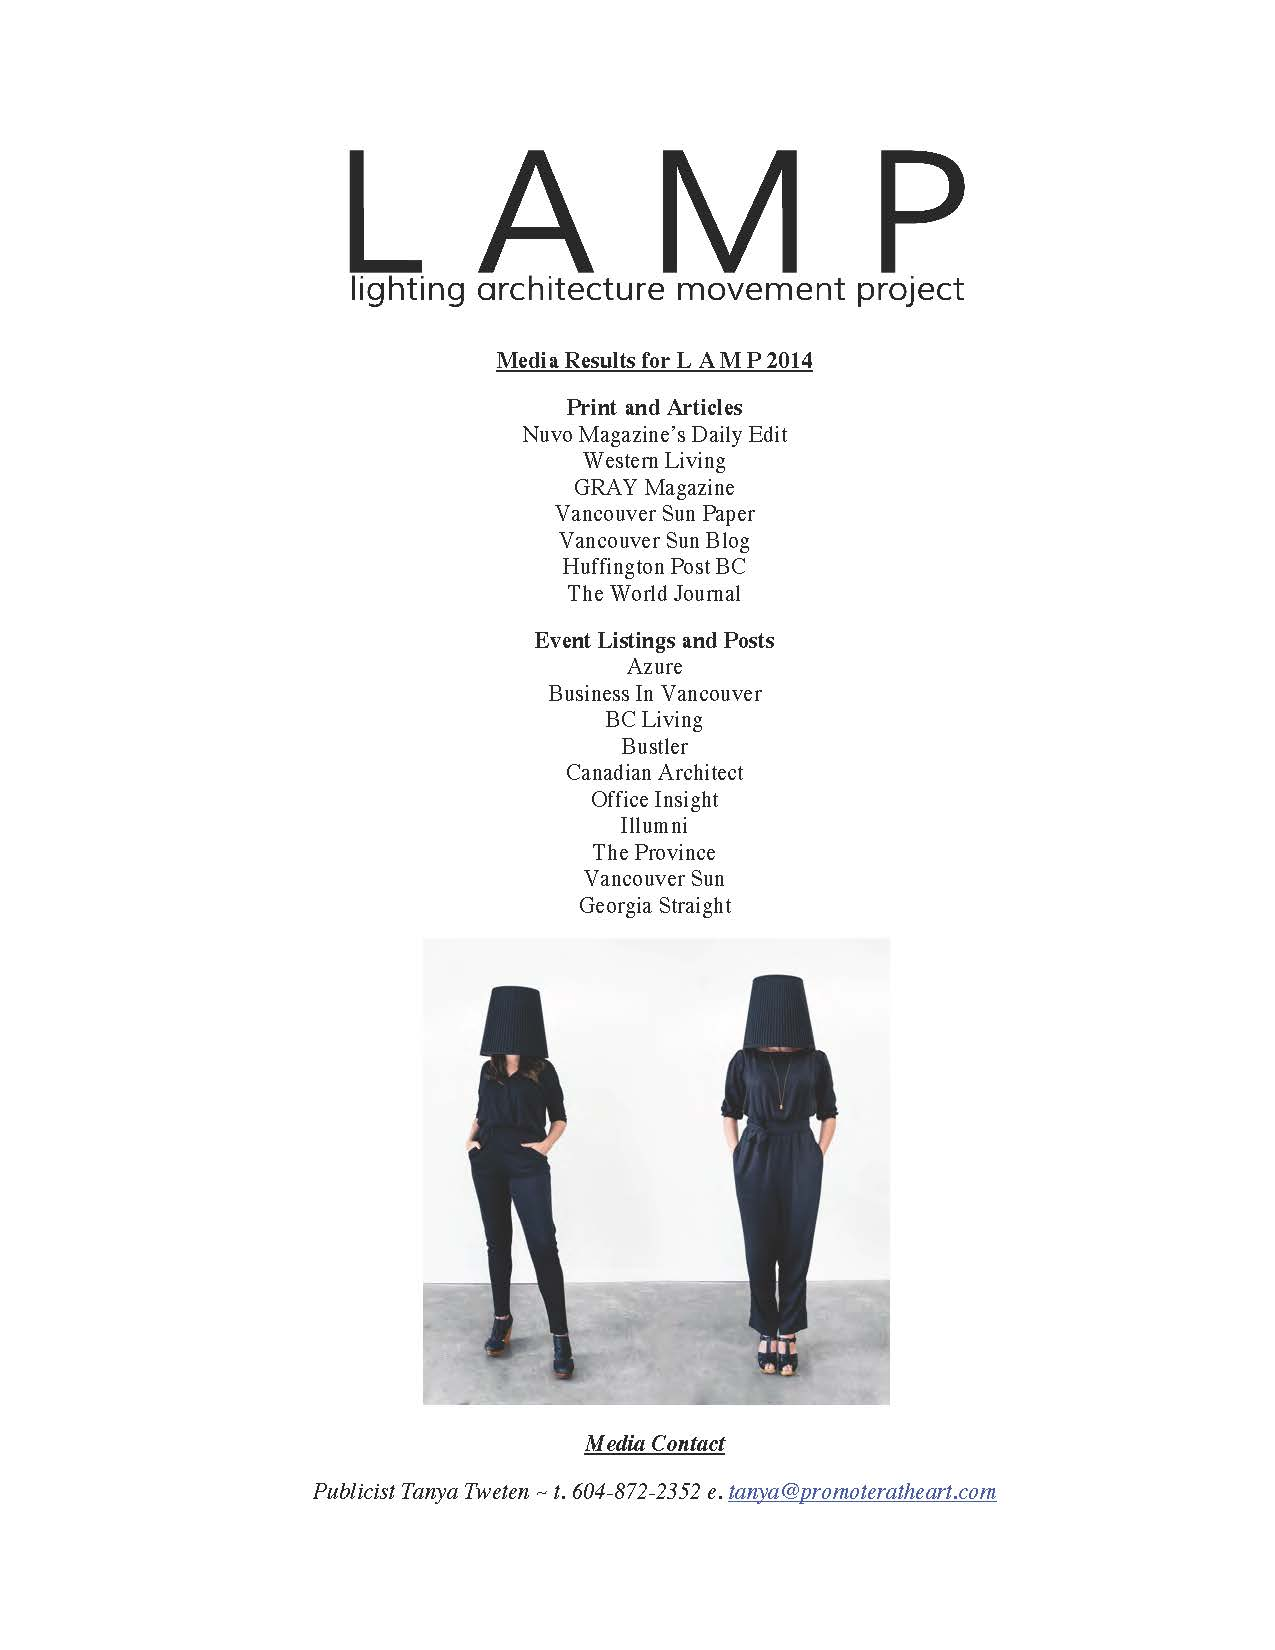 LAMP 2014 Press Kit_Page_01.jpg